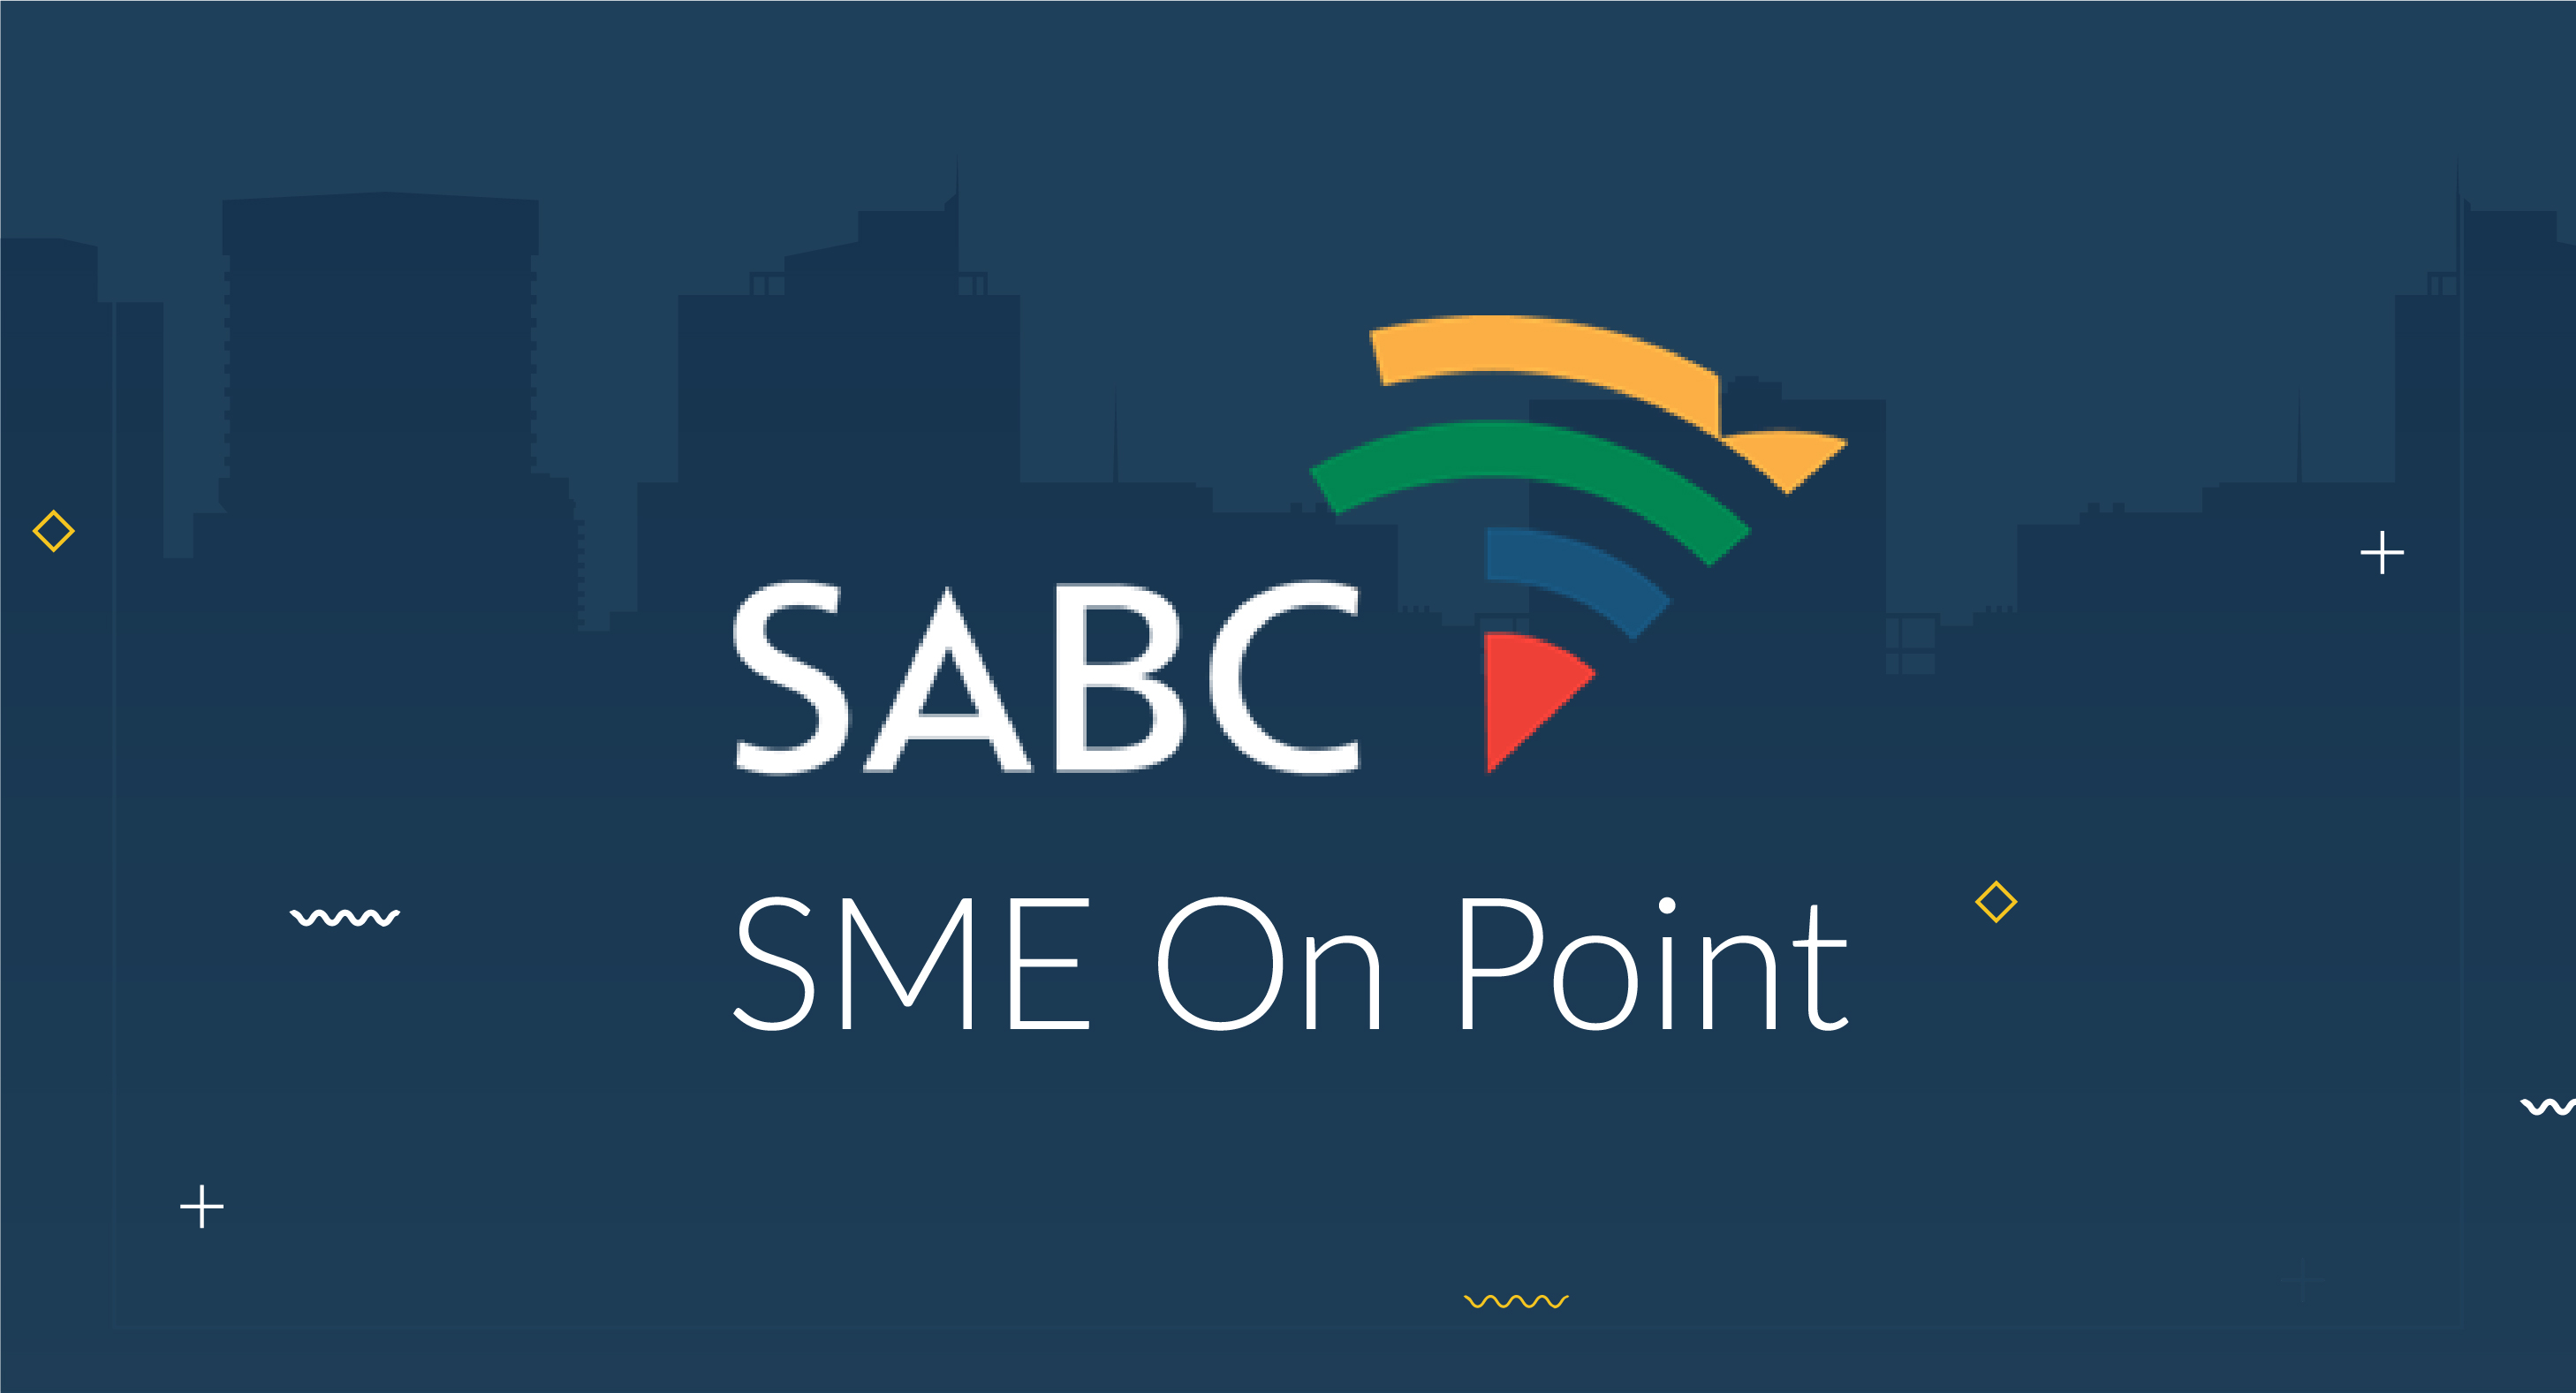 SABC SME On Point with Daniel Moritz